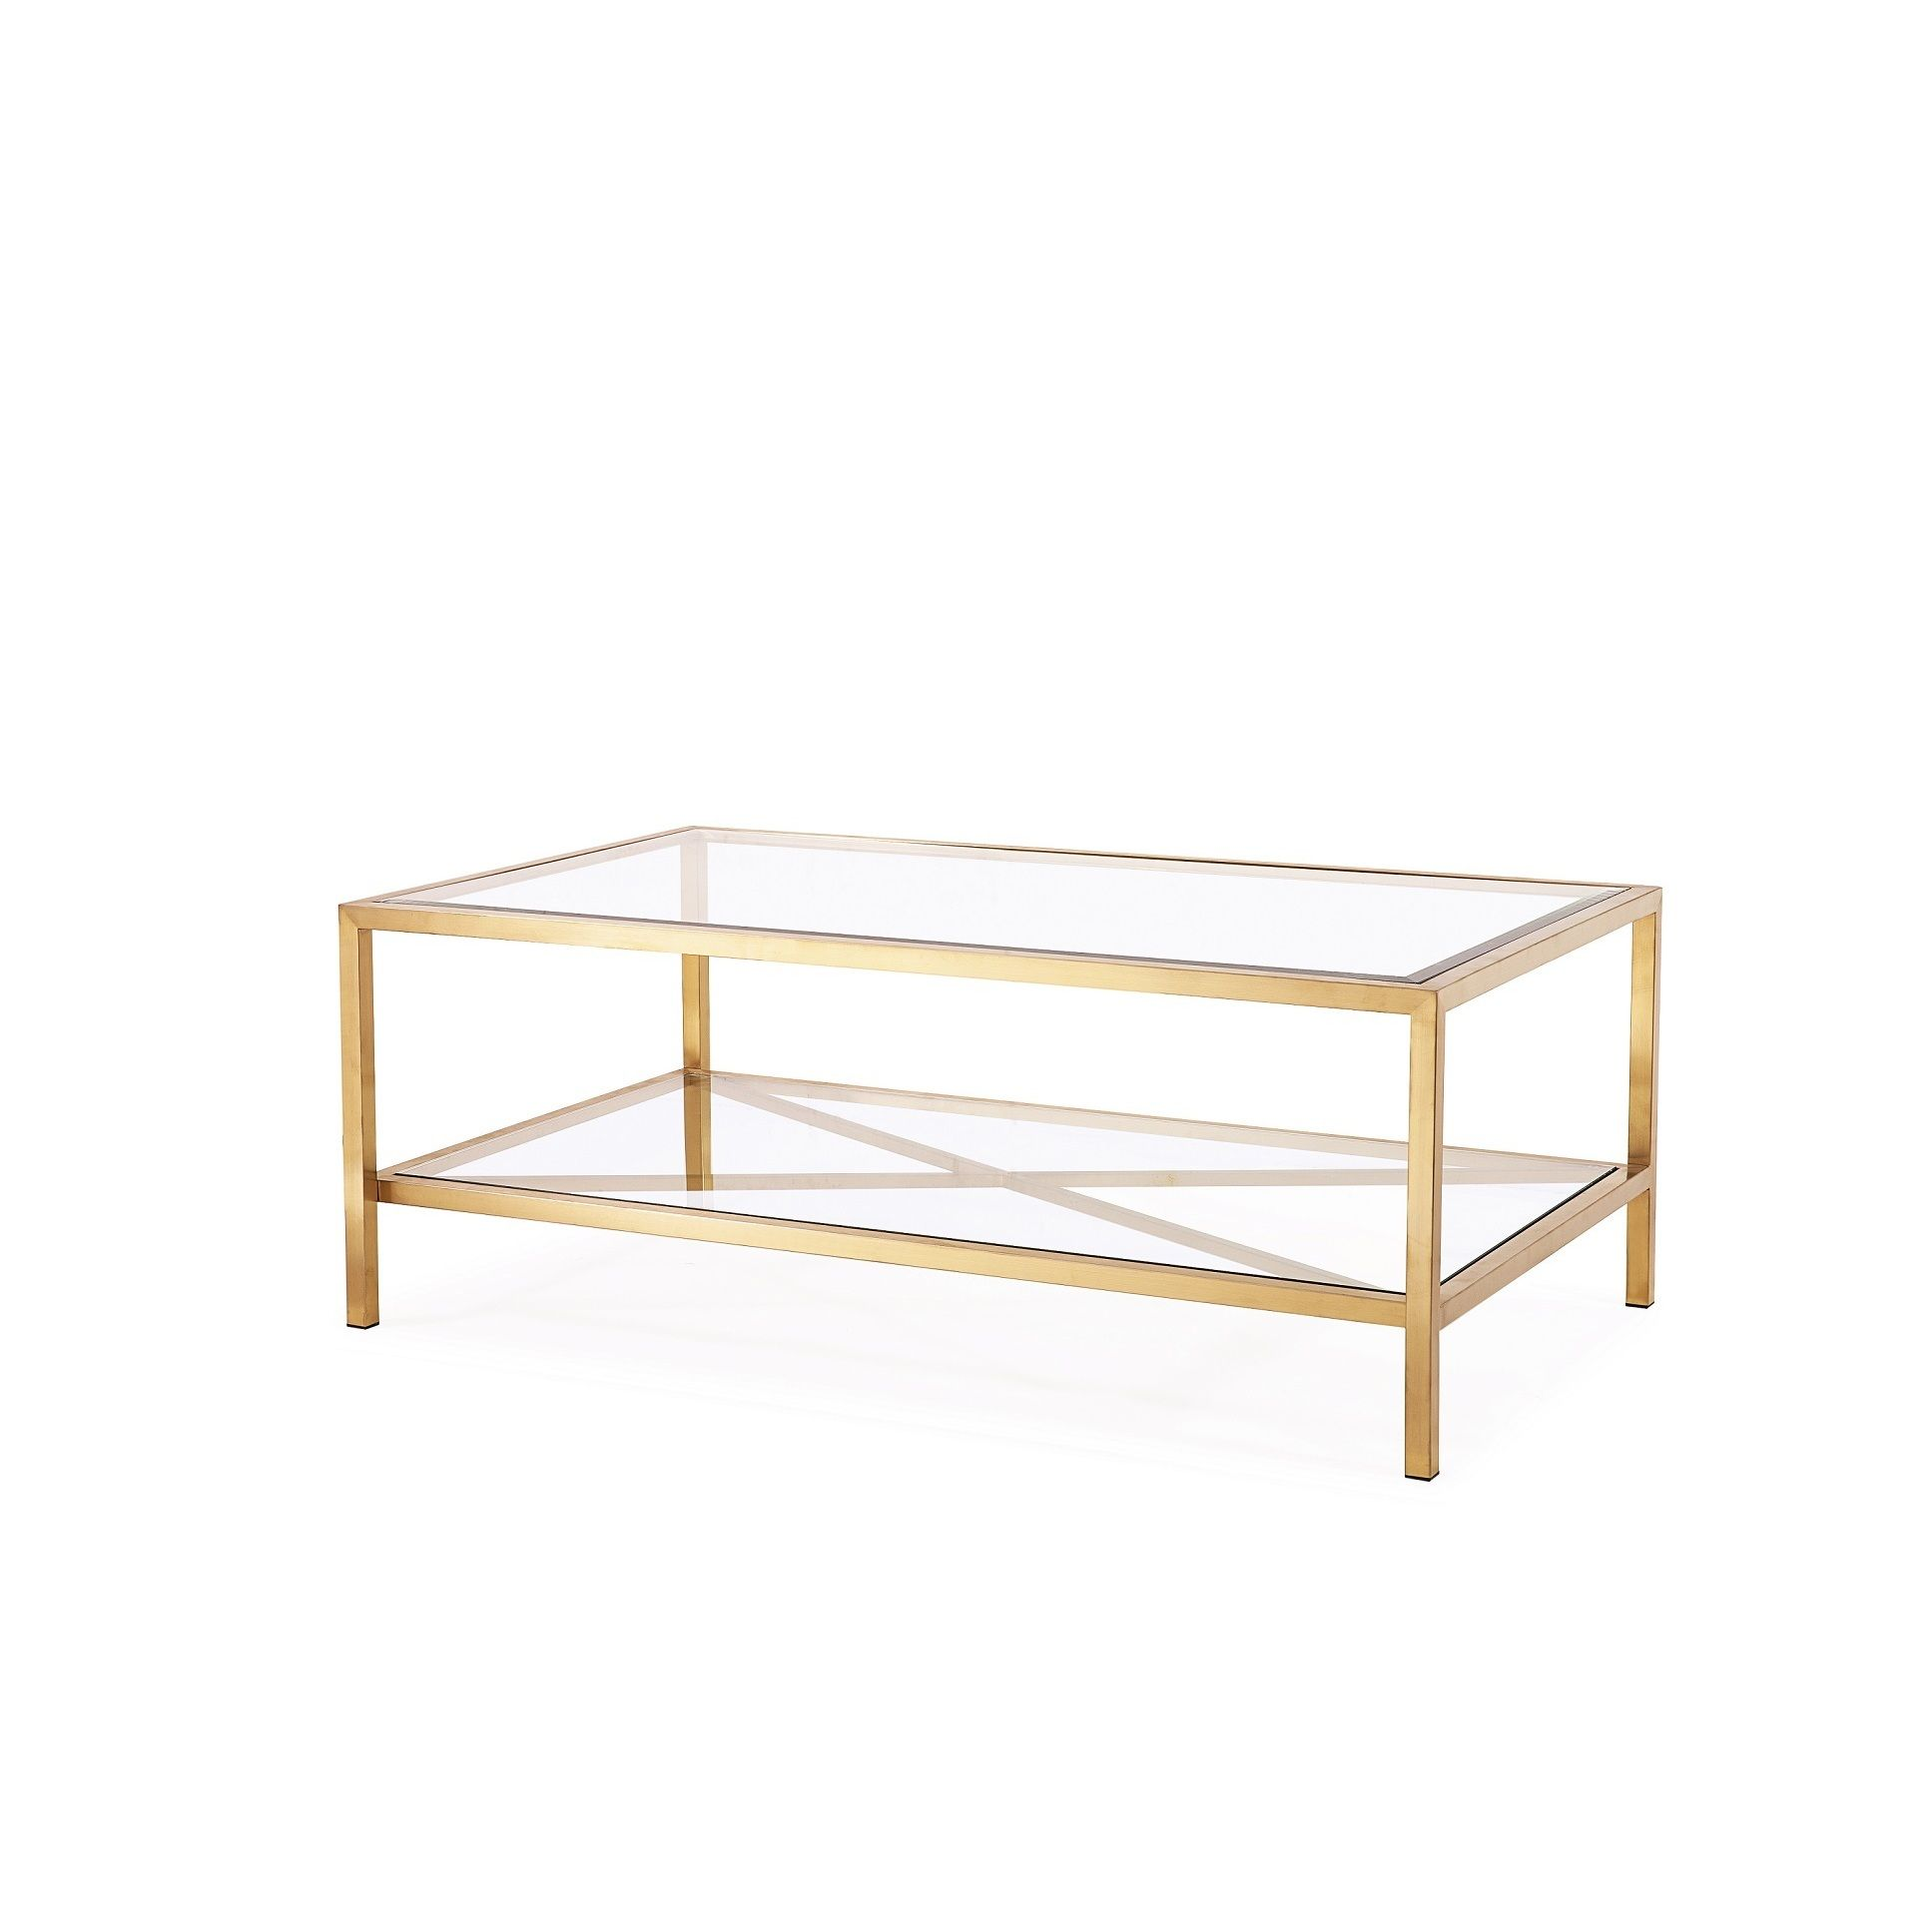 Antique Gold And Glass Coffee Table: Gardner Coffee Table Featuring A Sleek, Antique Gold